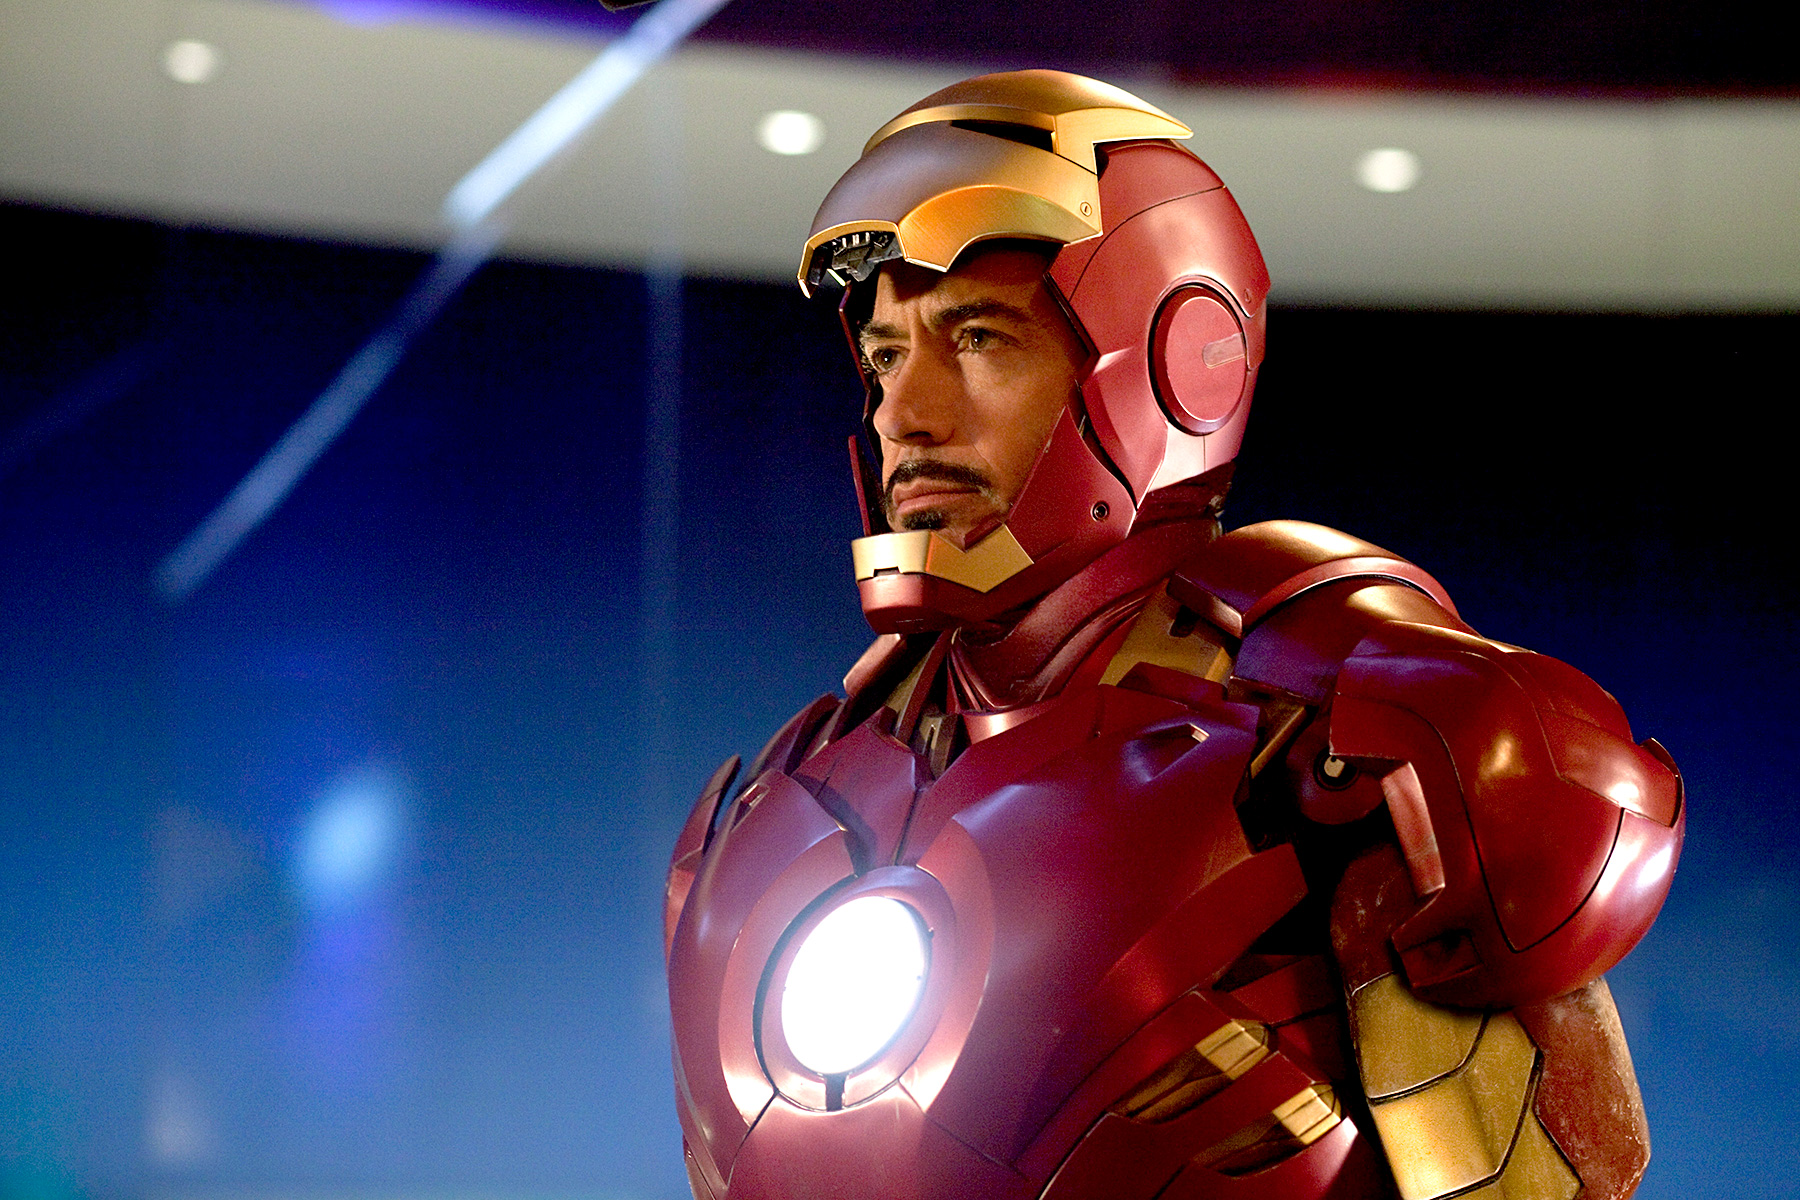 The Oscar-nominated star has starred in multiple blockbusters as Tony Stark/Iron Man. He led three Iron Man movies as the hero, also appearing in The Avengers series.